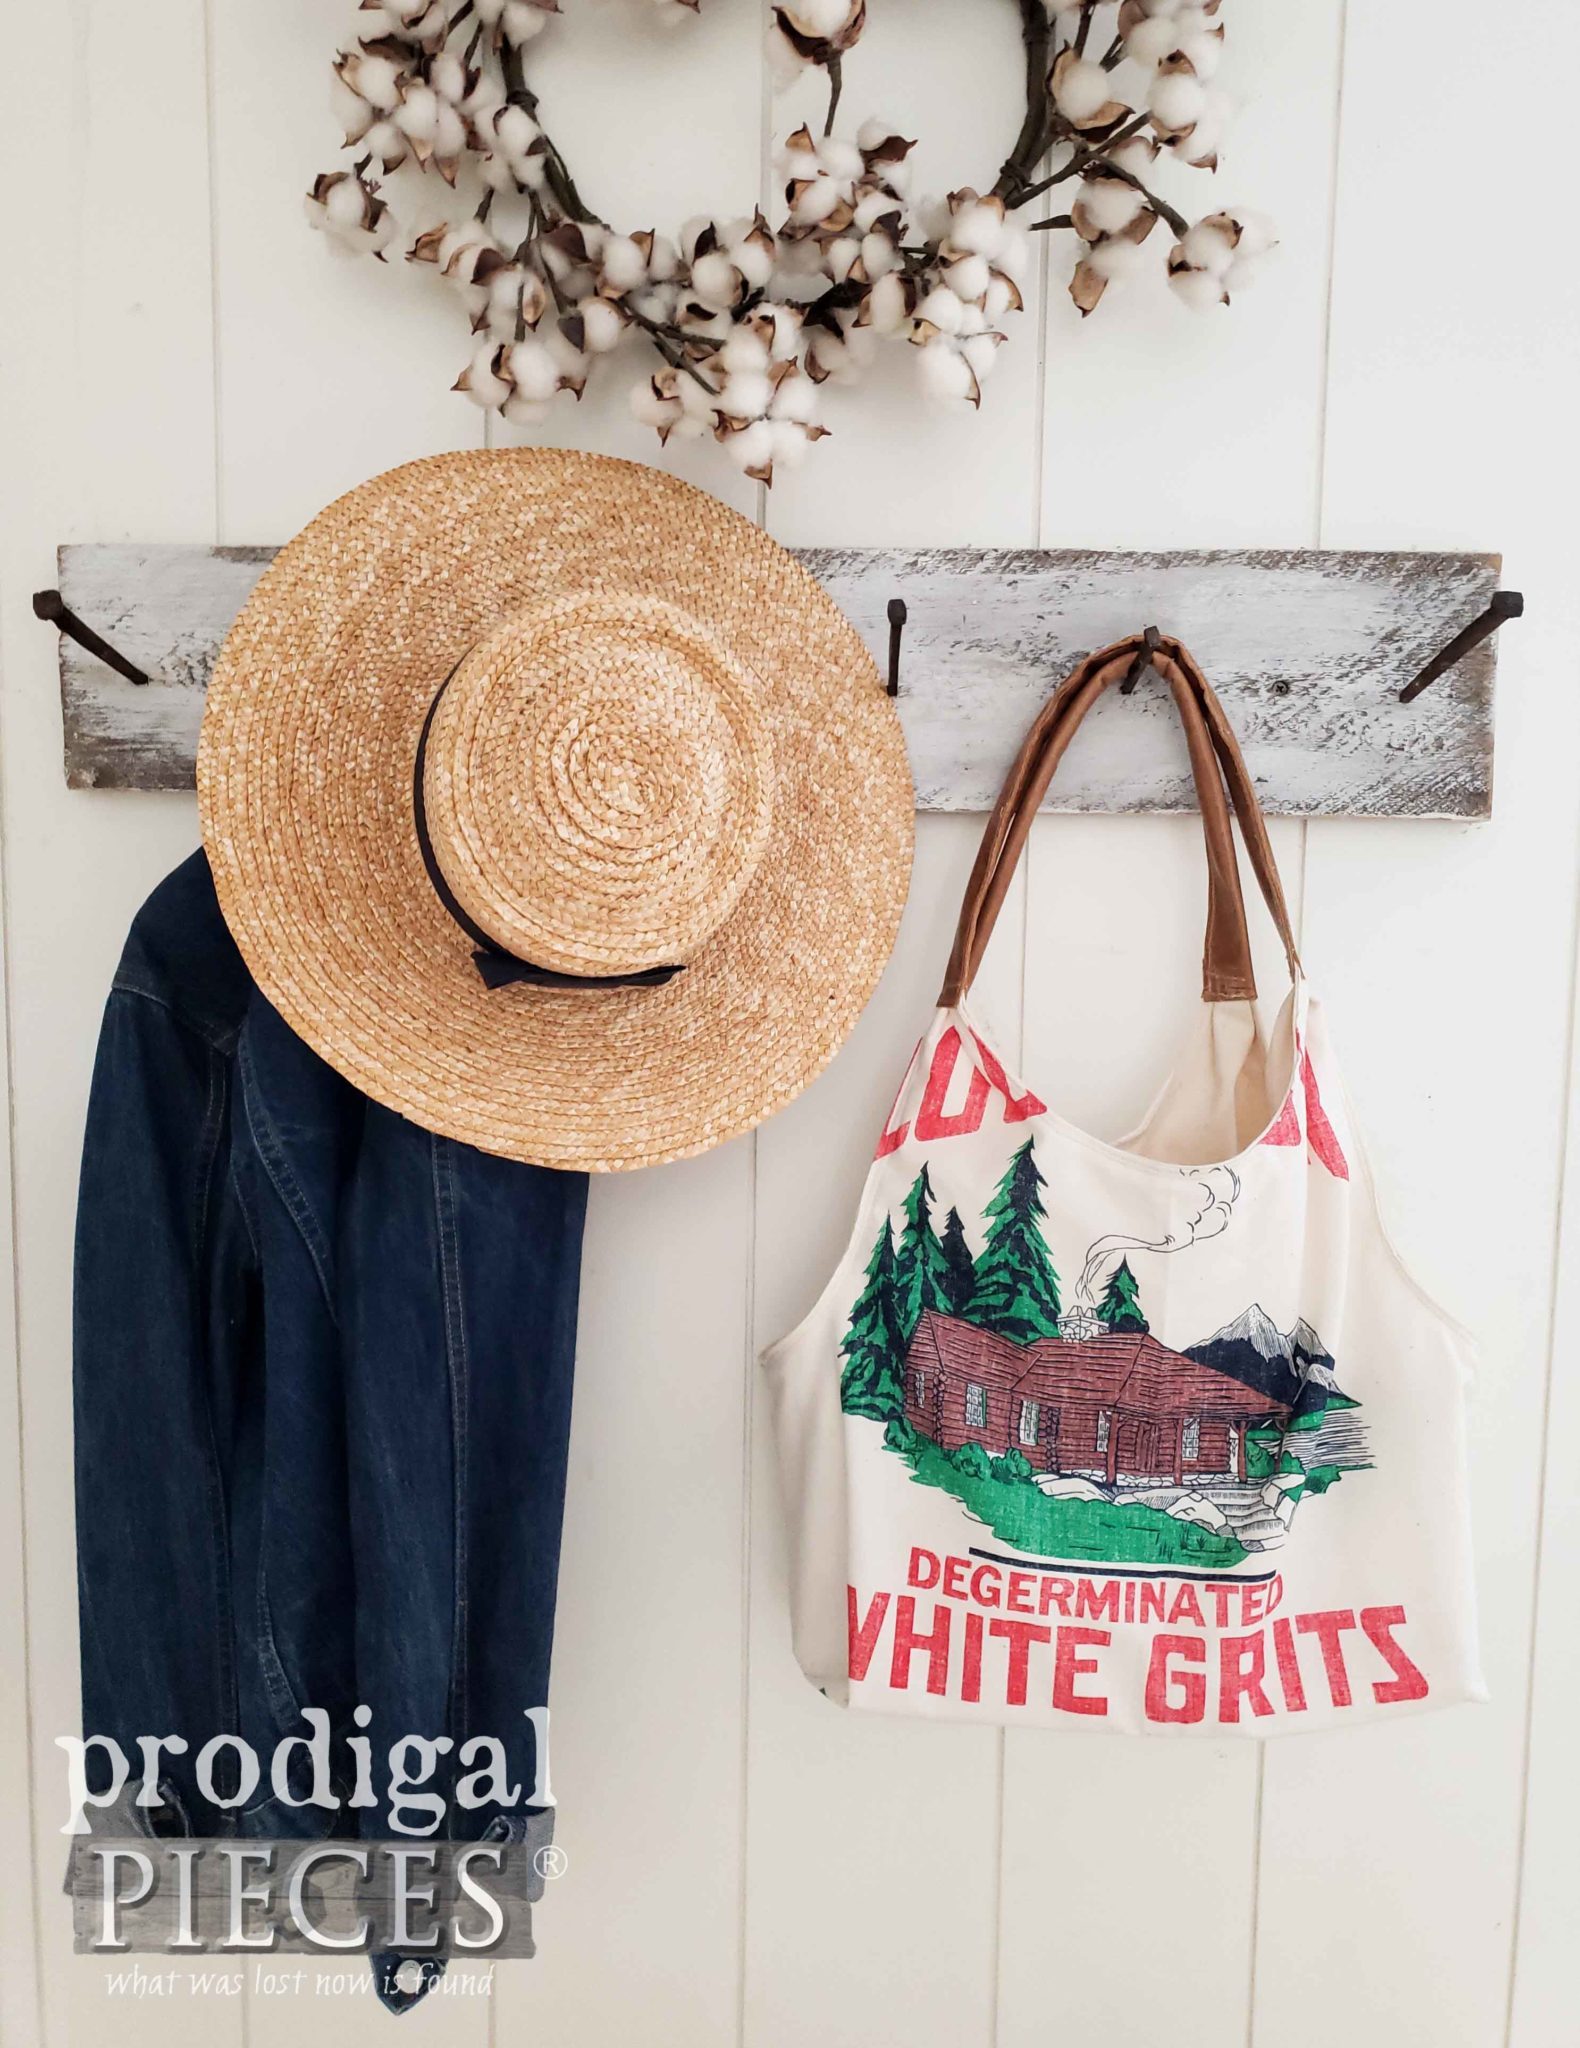 Farmhouse Feed Sack Tote Handmade by Larissa of Prodigal Pieces | prodigalpieces.com #prodigalpieces #diy #handmade #fashion #farmhouse #style #women